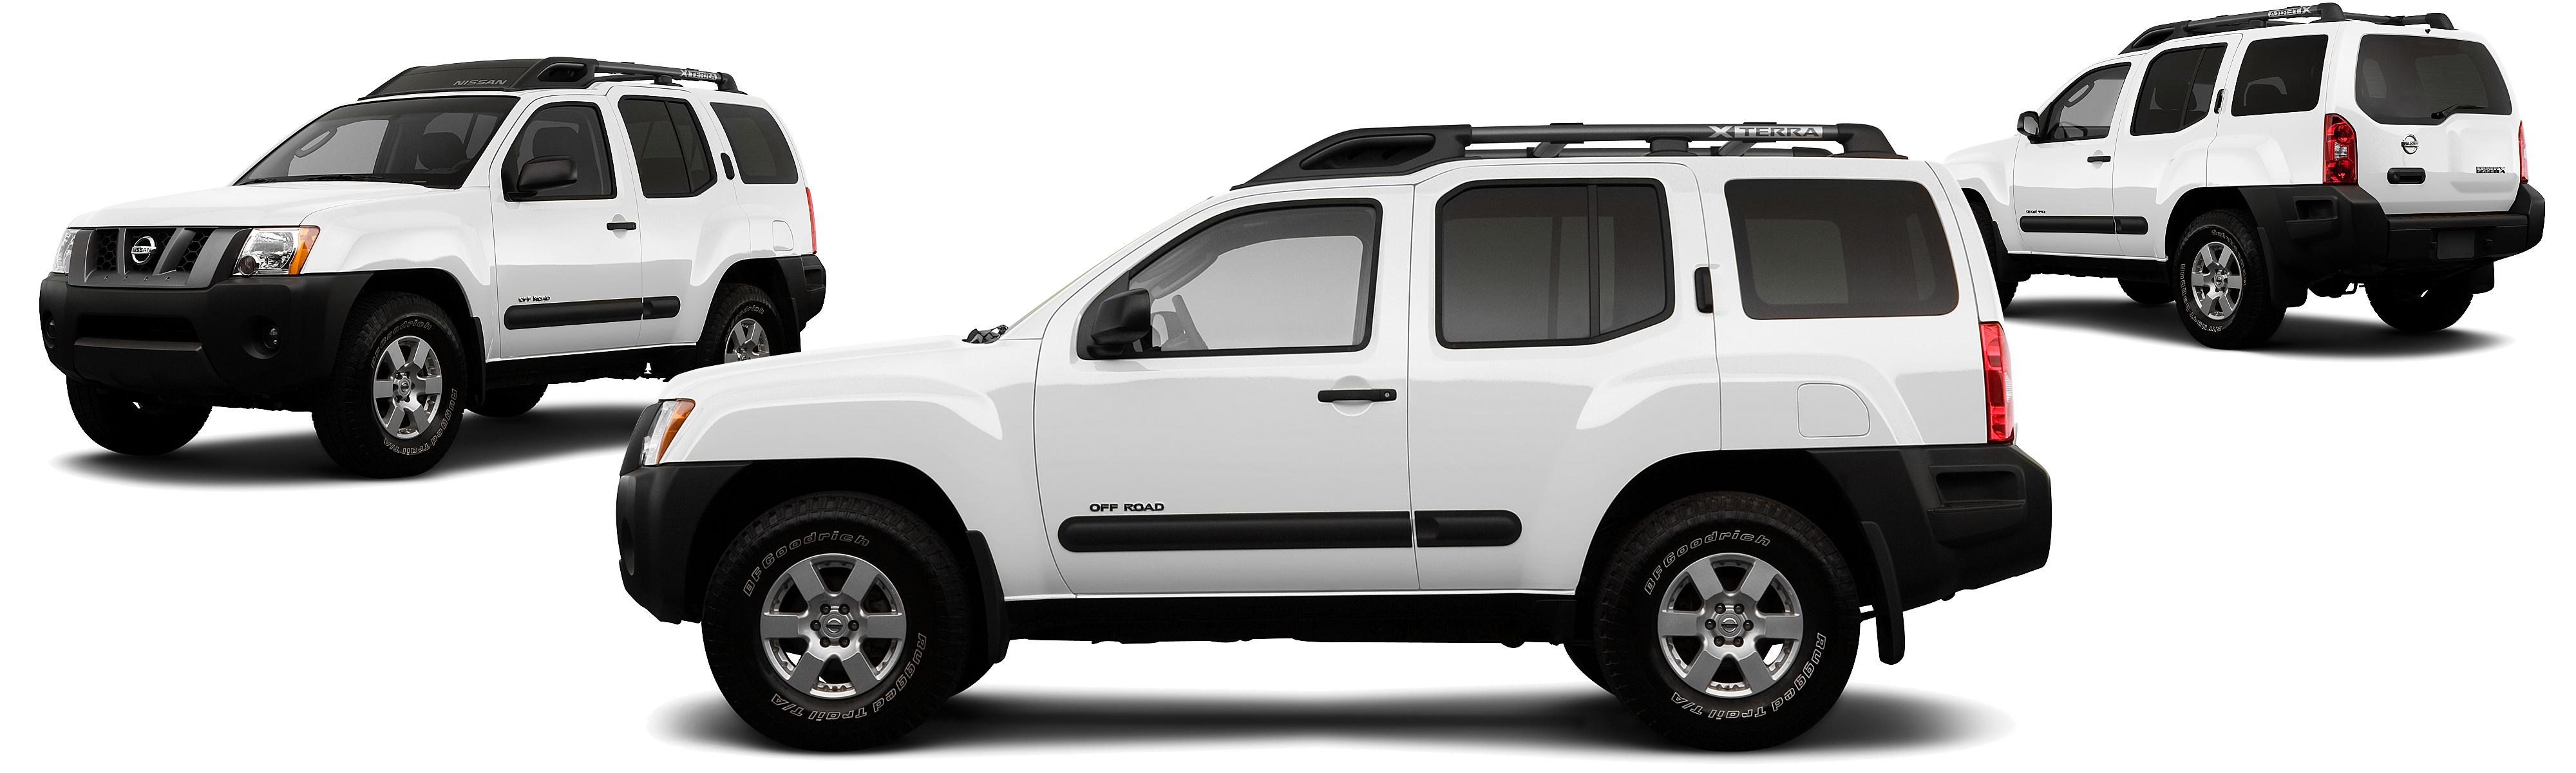 Nissan Xterra Off Road Suv Research Groovecar